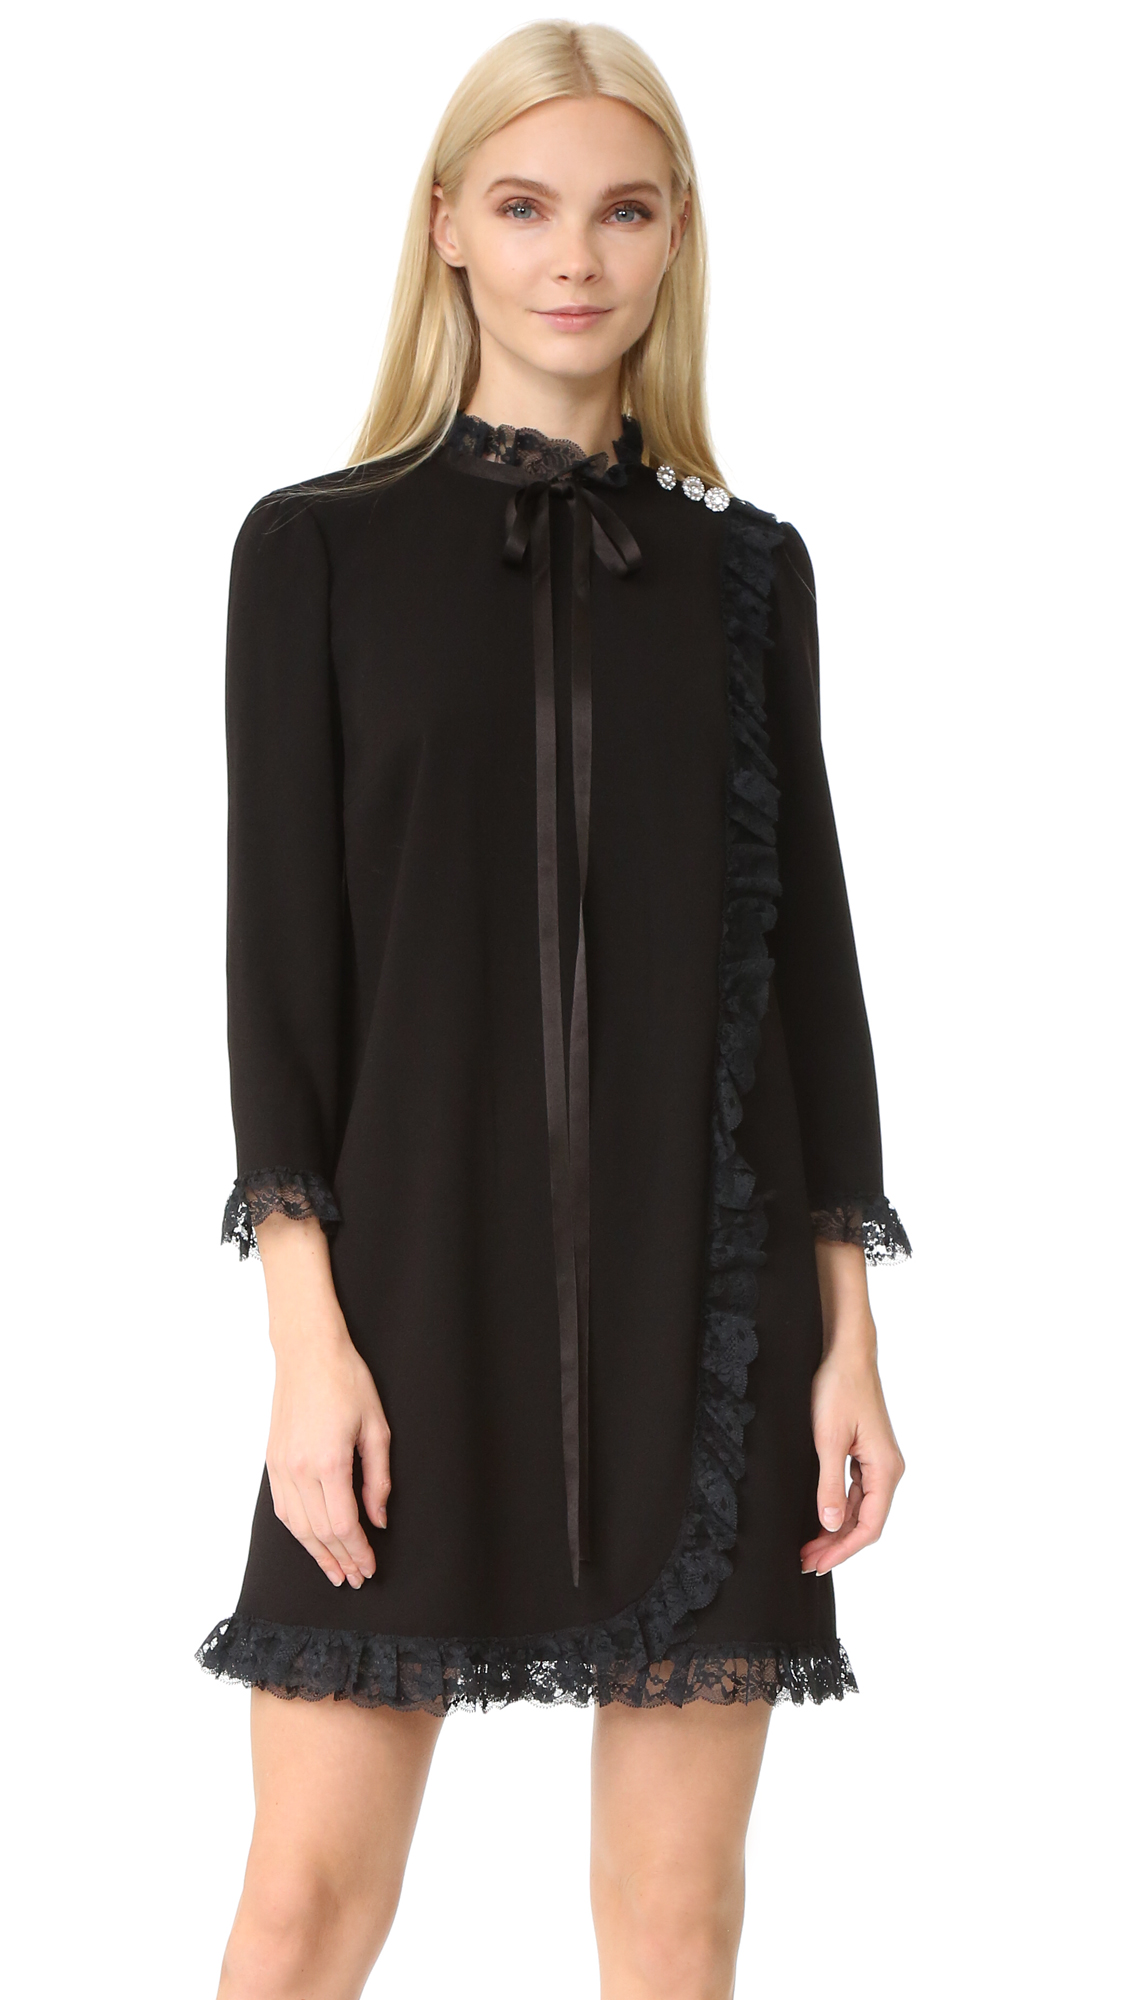 marc jacobs female marc jacobs lace babydoll dress black